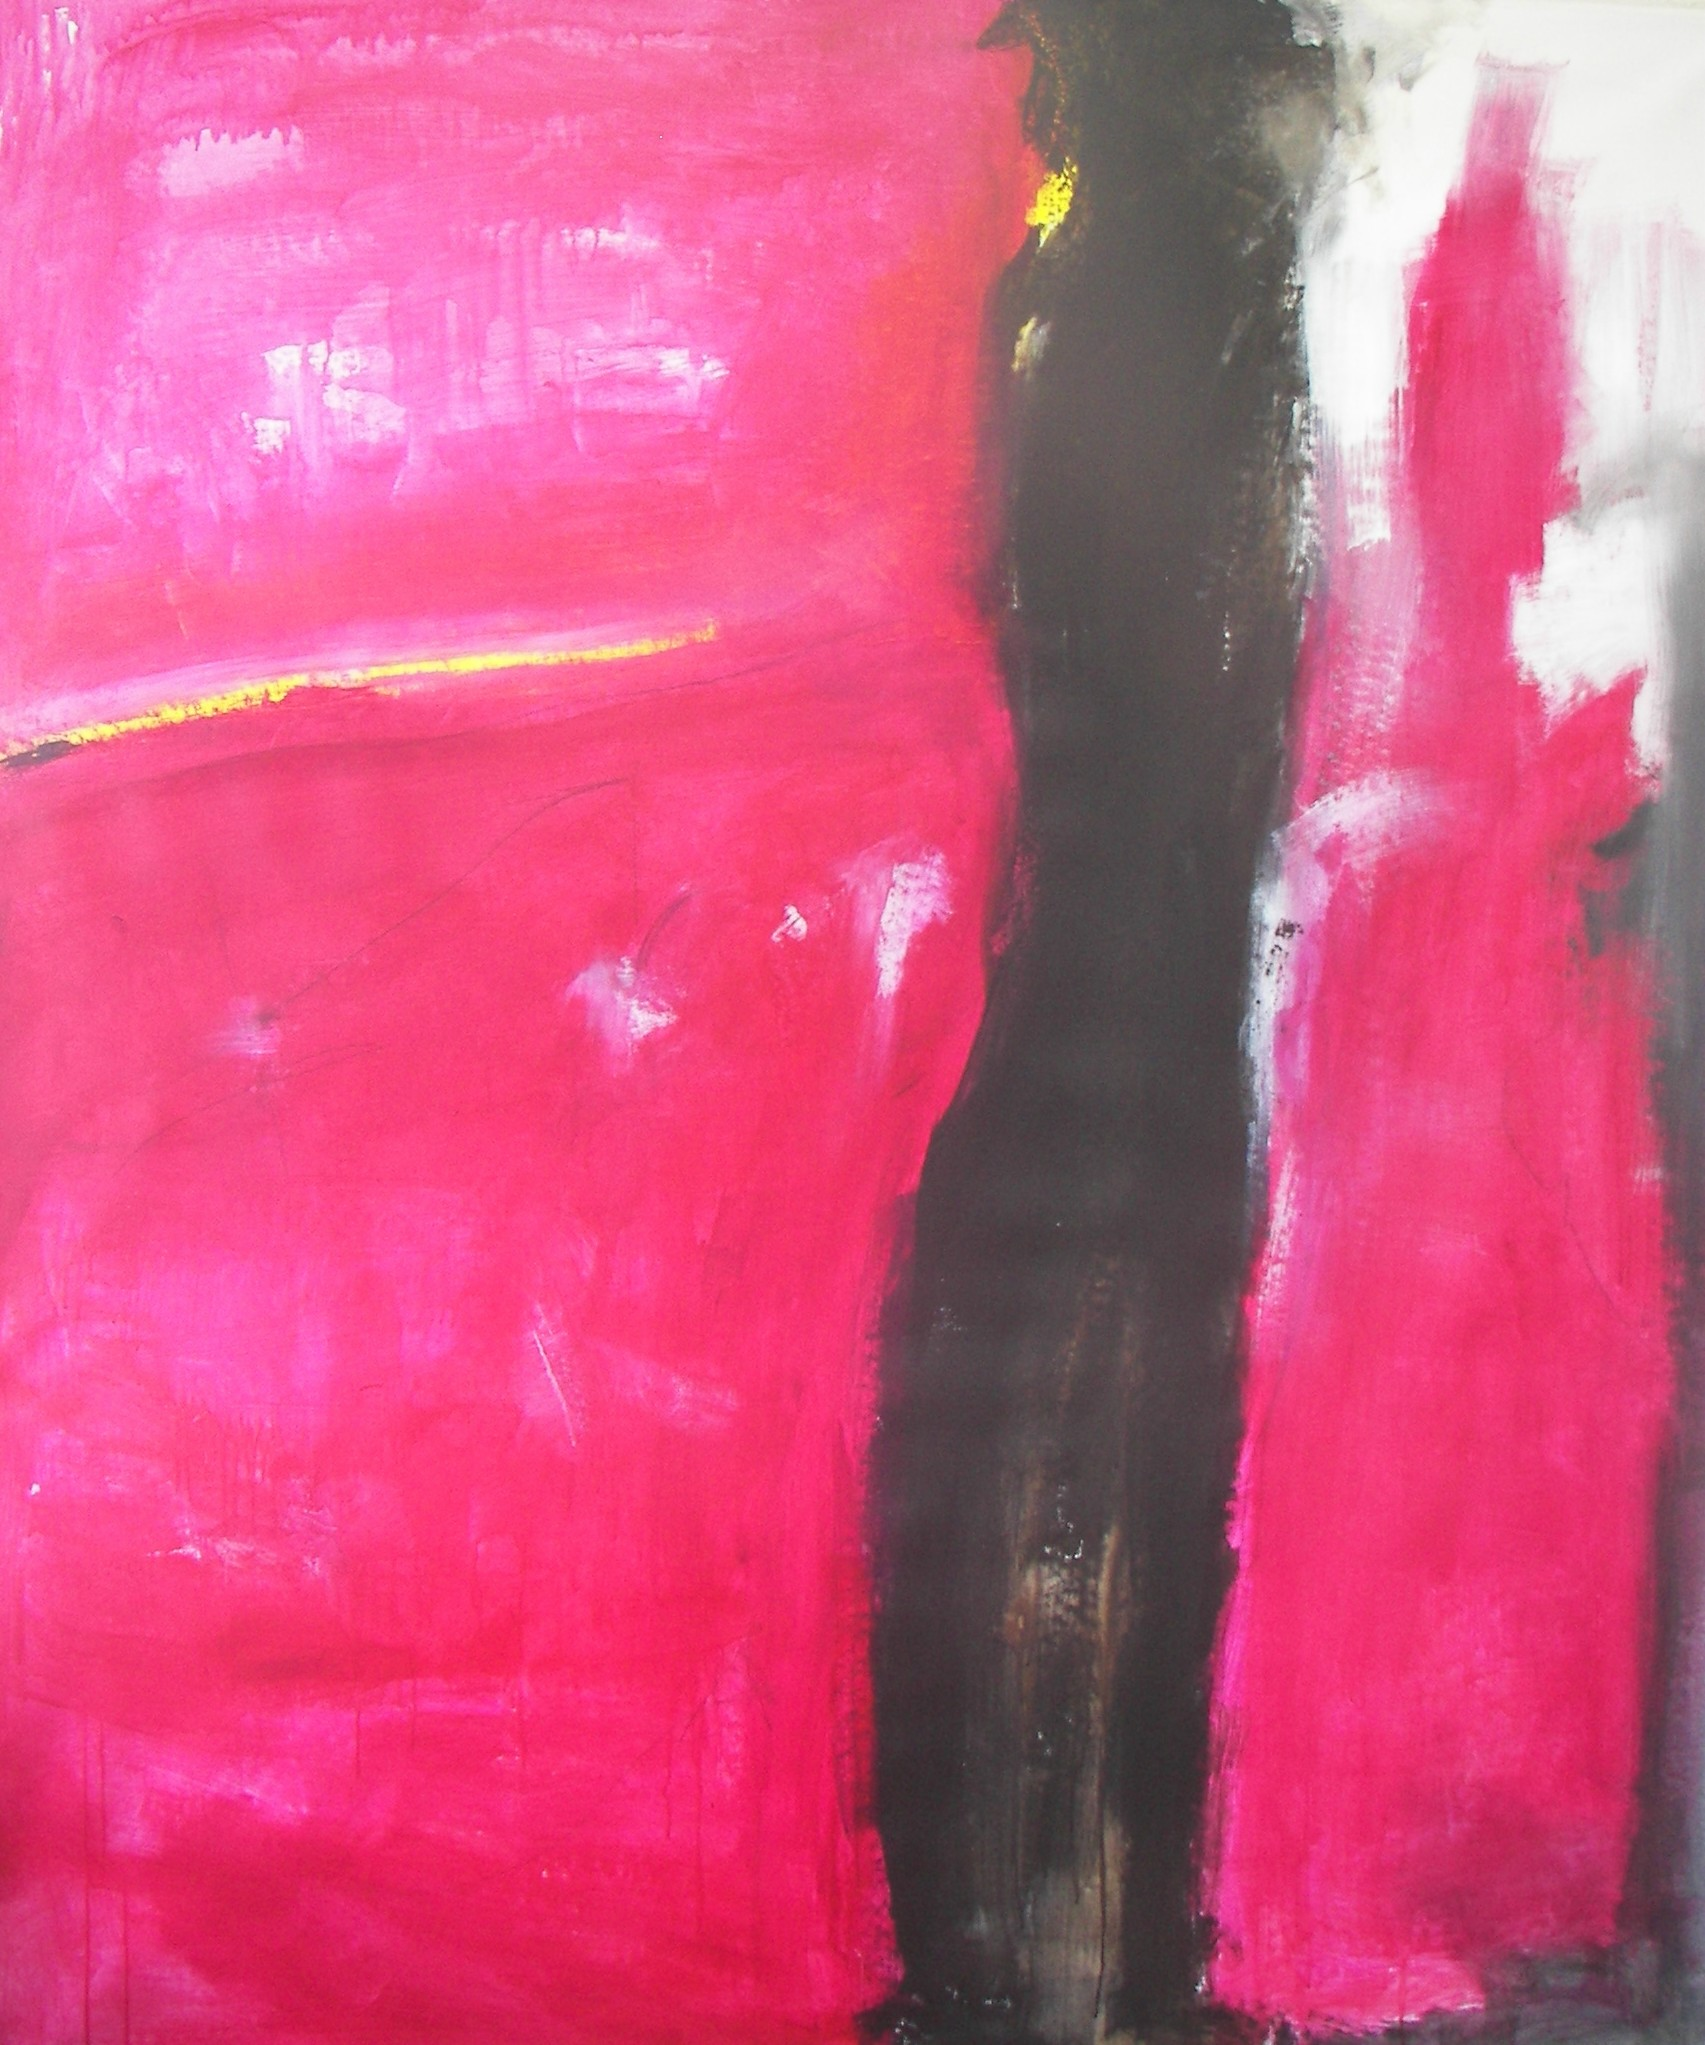 'donna in rosso' 170x200cm 2010